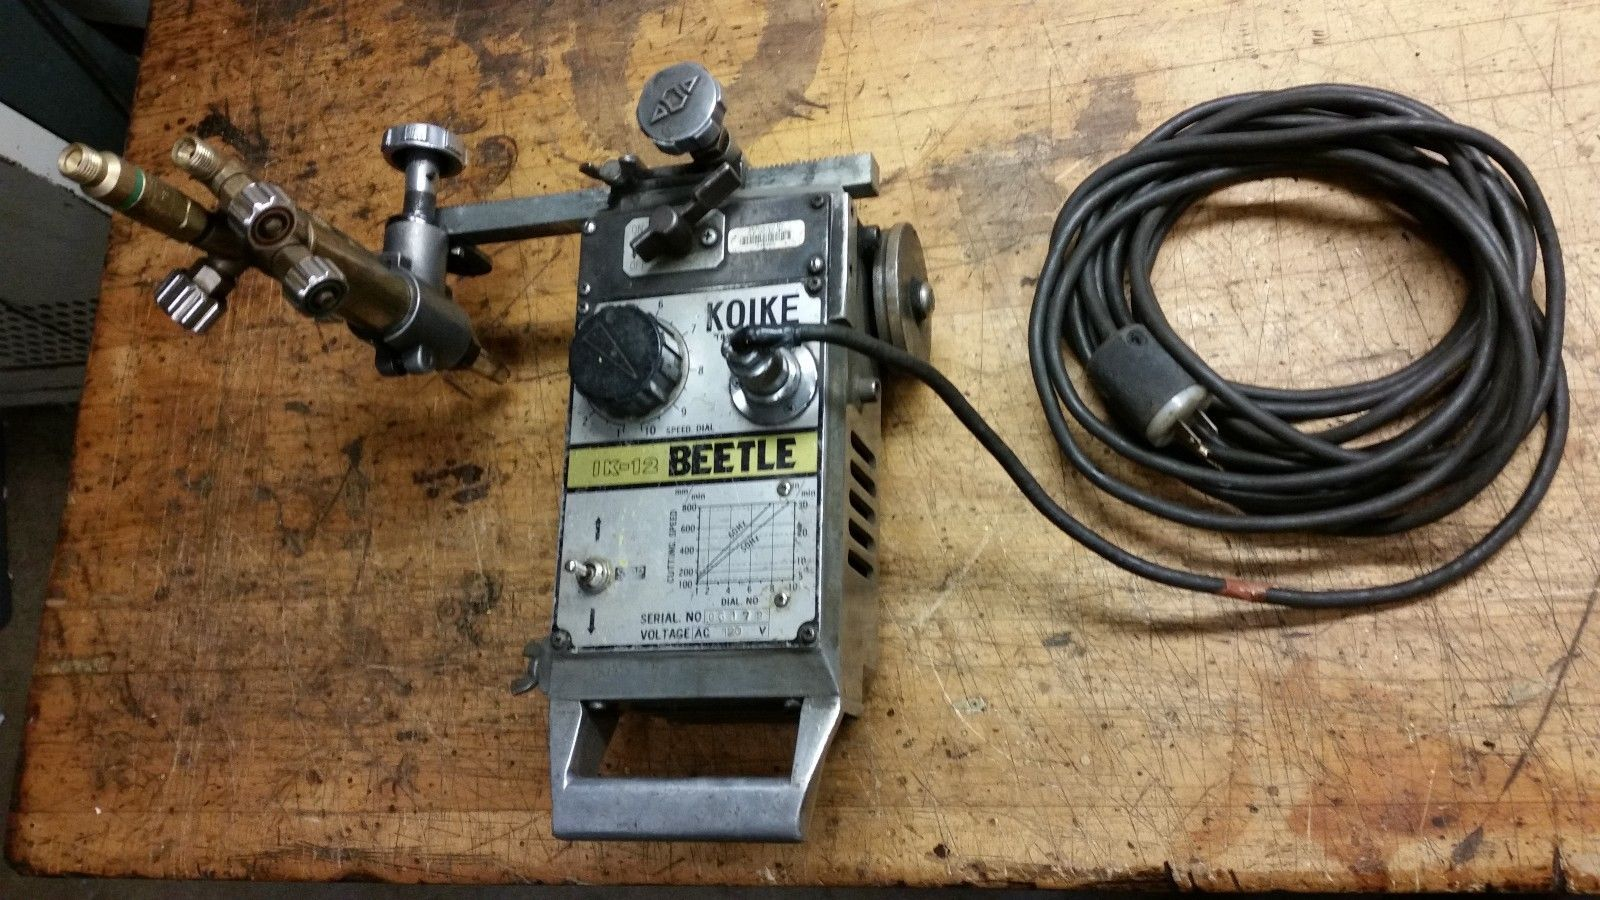 KOIKE IK-12 BEETLE TRACK CUTTING MACHINE W/ TORCH oxy-acetylene